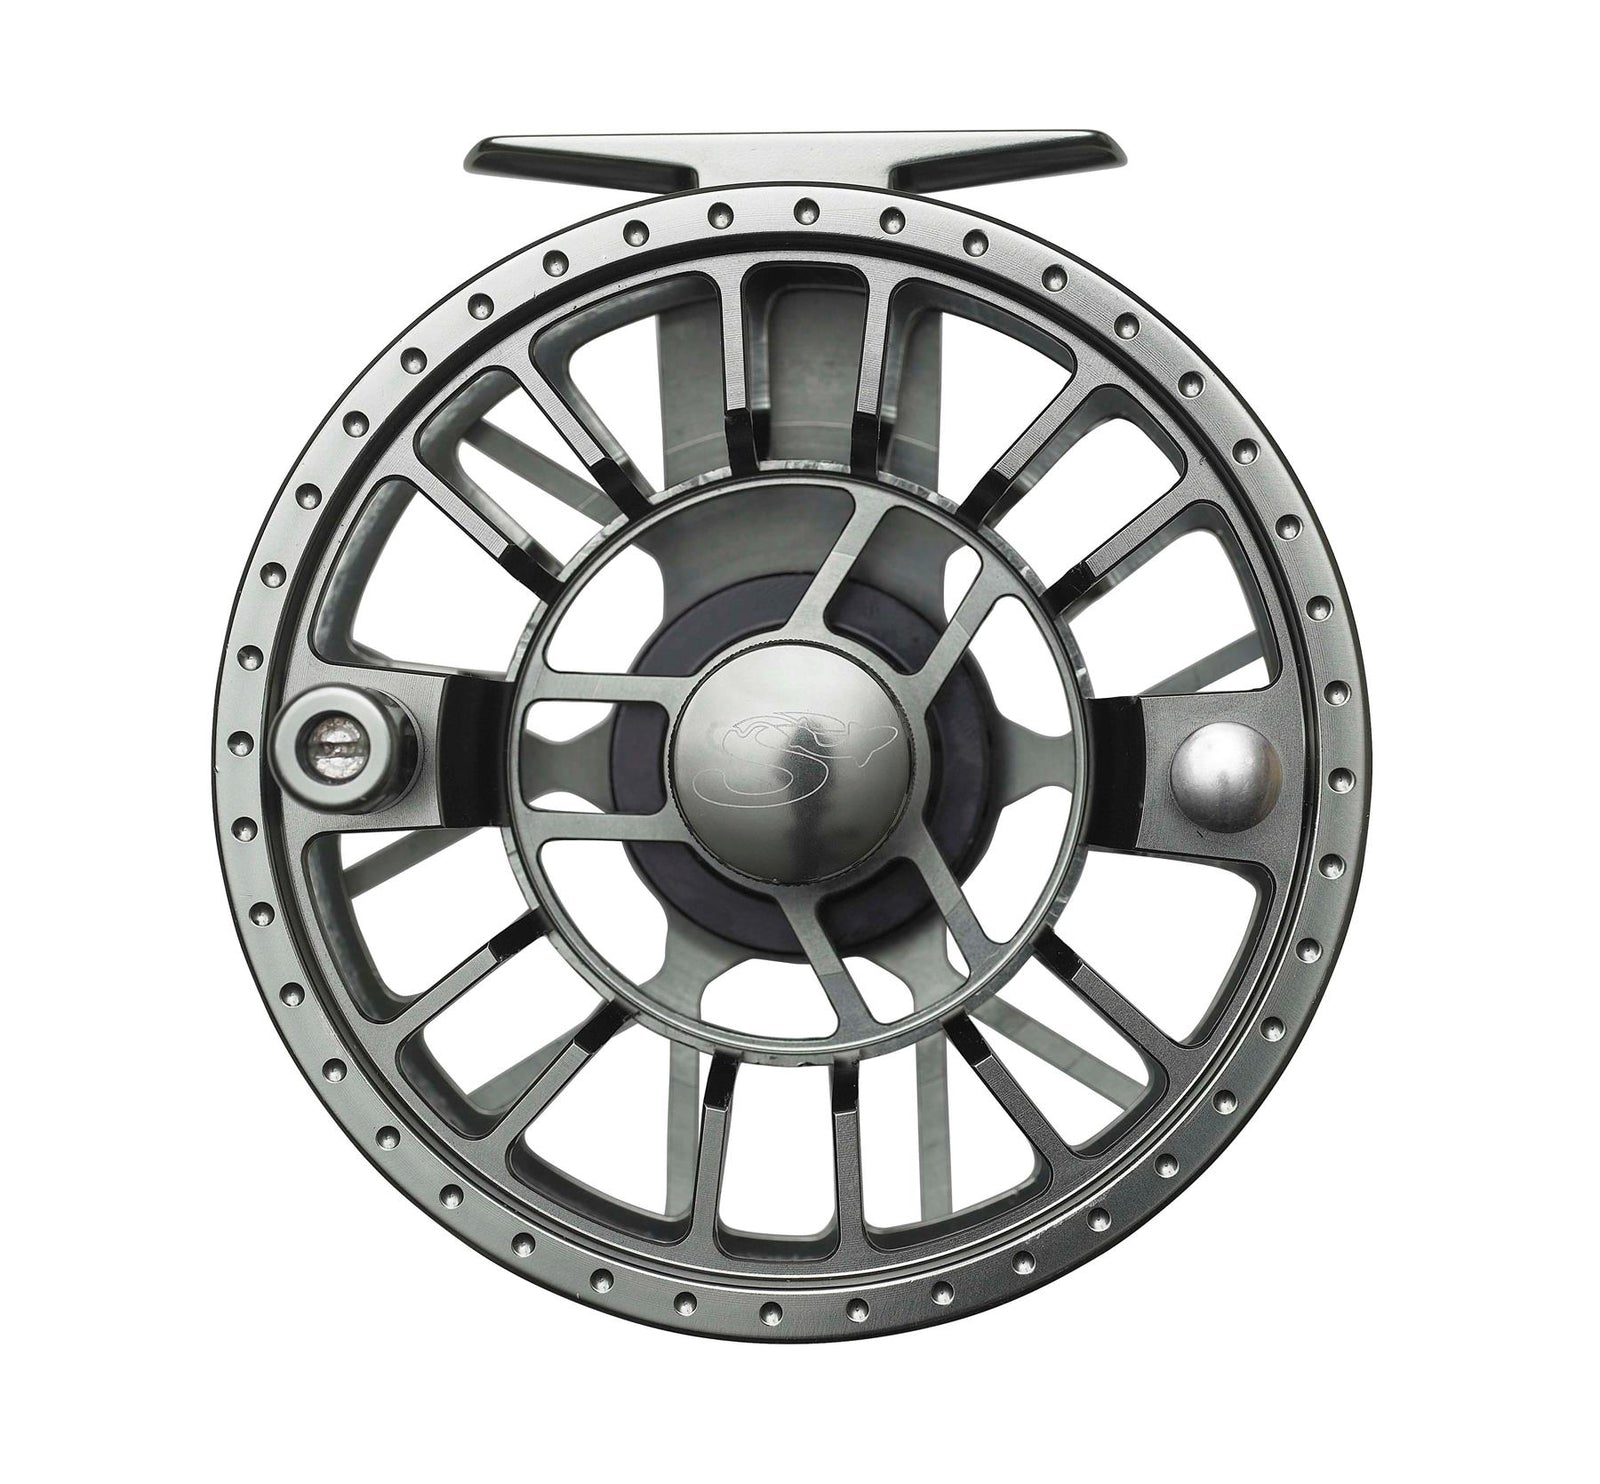 Scierra Traxion 1 LW Fly Fishing Reel